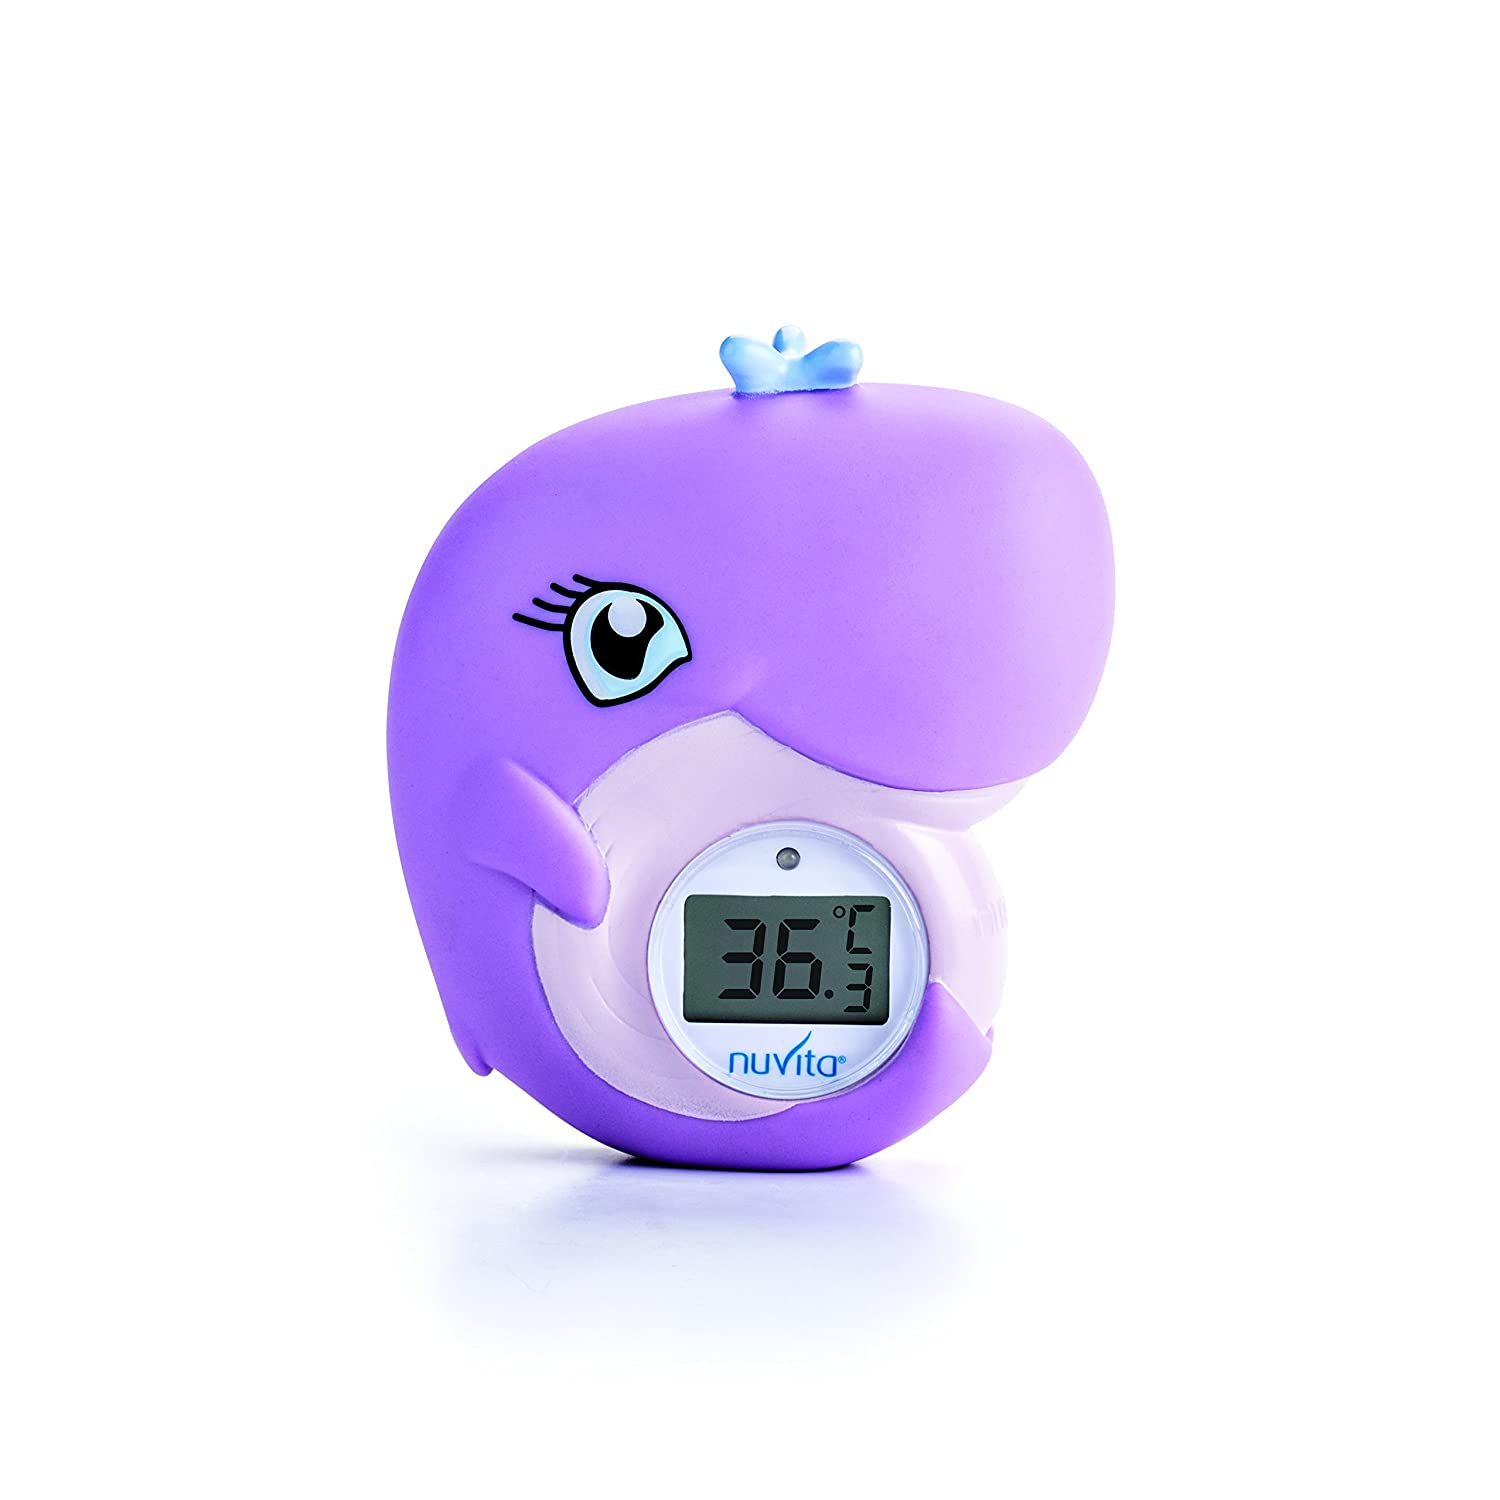 Bath and Room Thermometer 2 in 1 Nuvita 1007 – Digital Bath Thermometer – Baby Thermometer with Alarm LED Too Hot / Too Cold – Bath Toy in Whale Shape Certified and Safe (EN71 compliant) - EU Brand - Italian Design